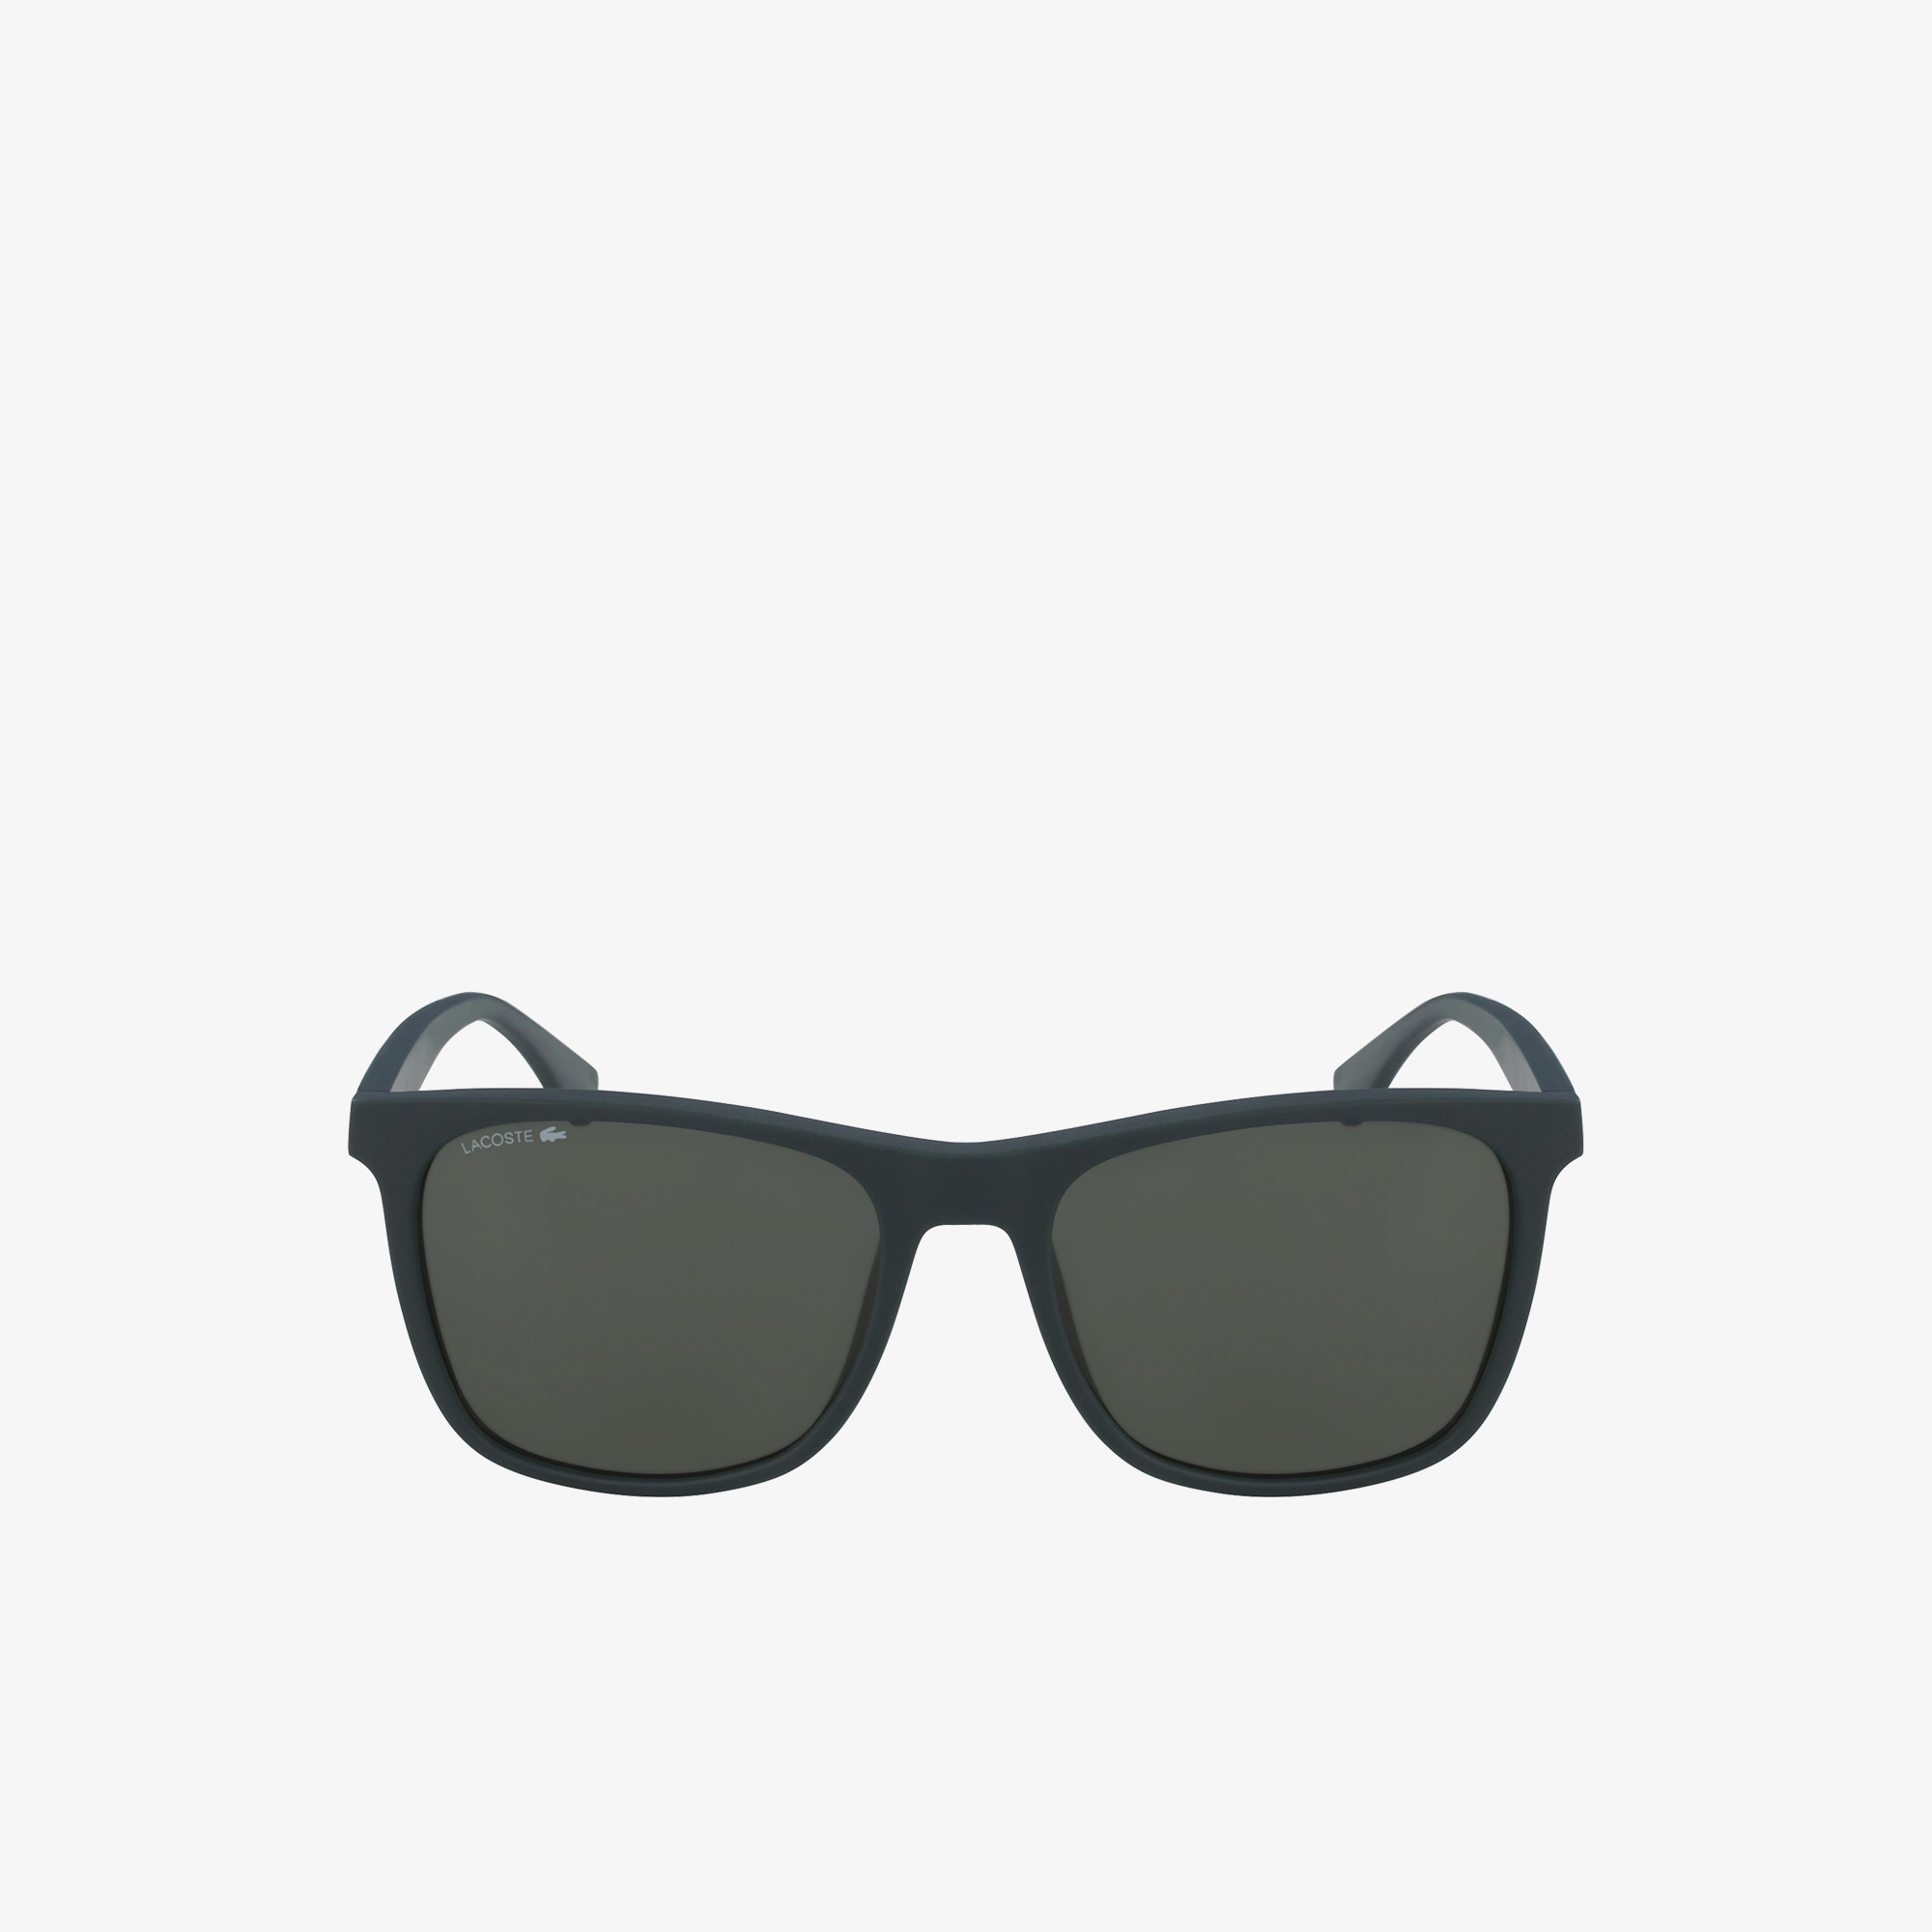 Men's Plastic Square L.12.12 Sunglasses